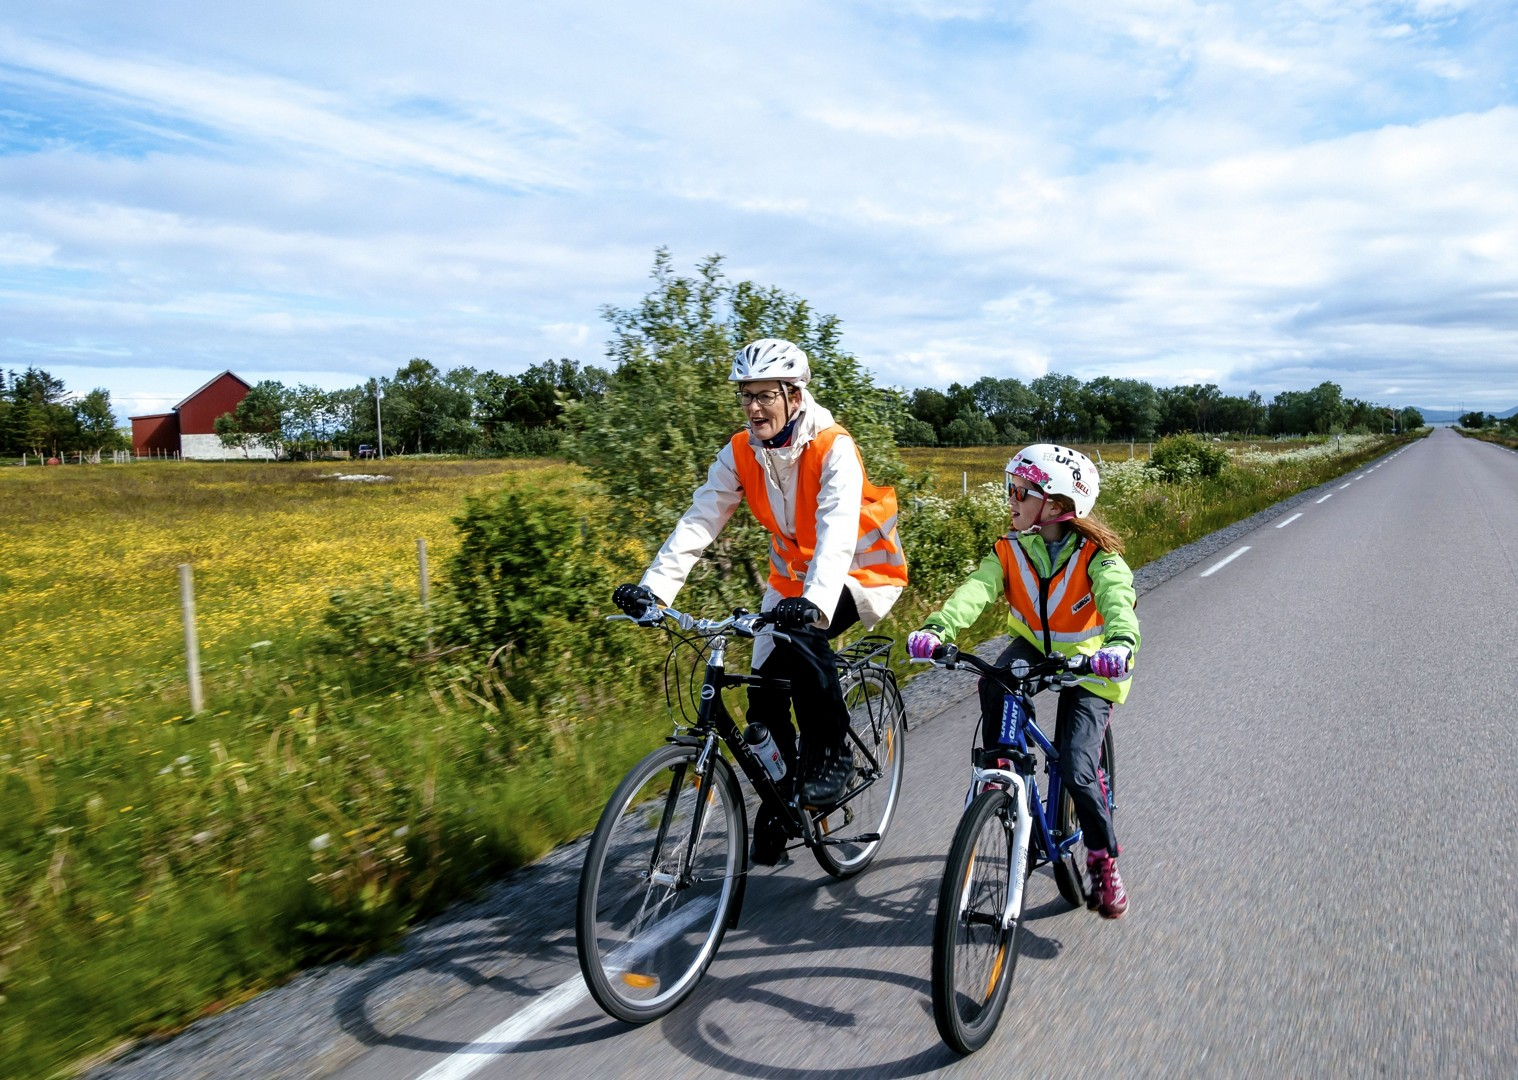 lofoten-islands-norway-12.jpg - Norway - Lofoten Islands - Biking with Vikings - Self-Guided Family Cycling Holiday - Family Cycling